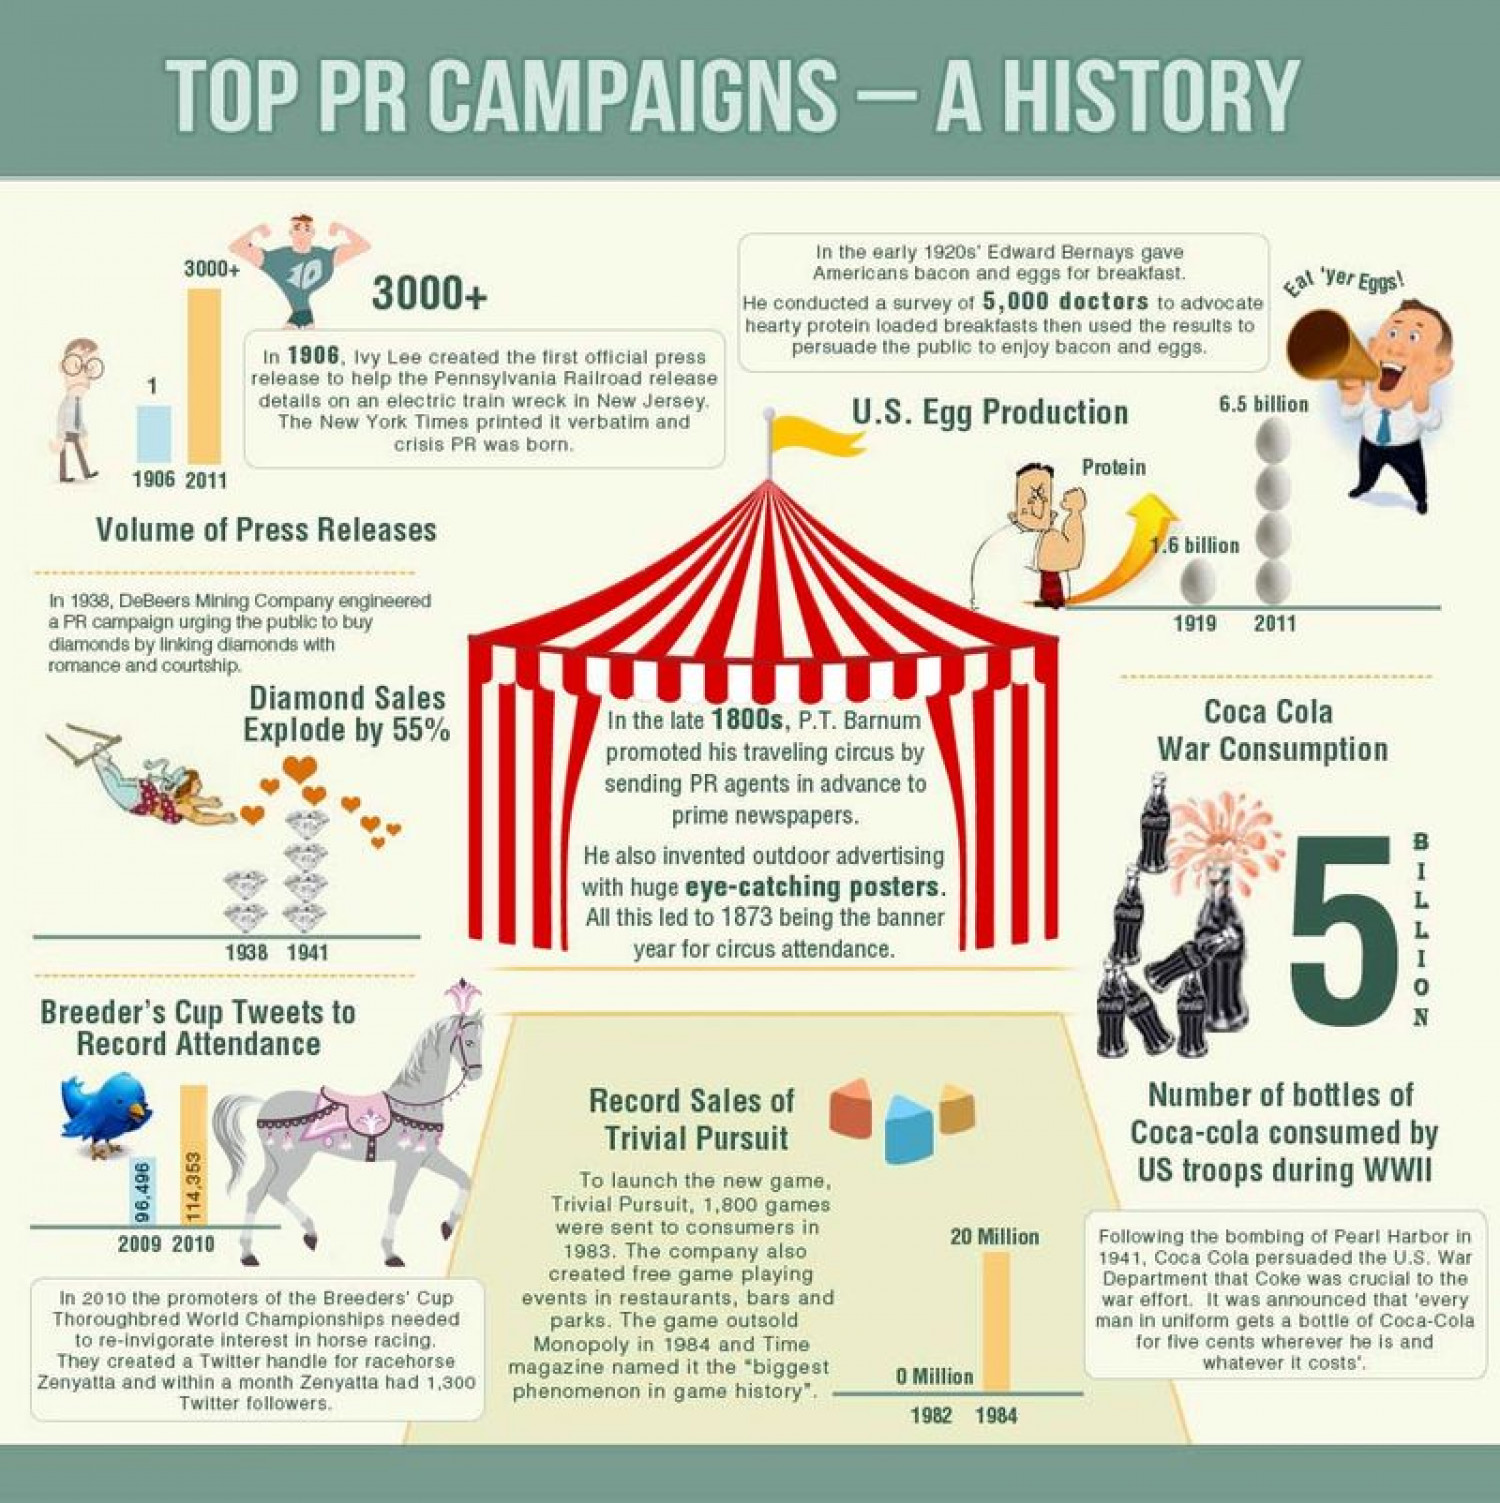 Top PR Campaigns - A History Infographic